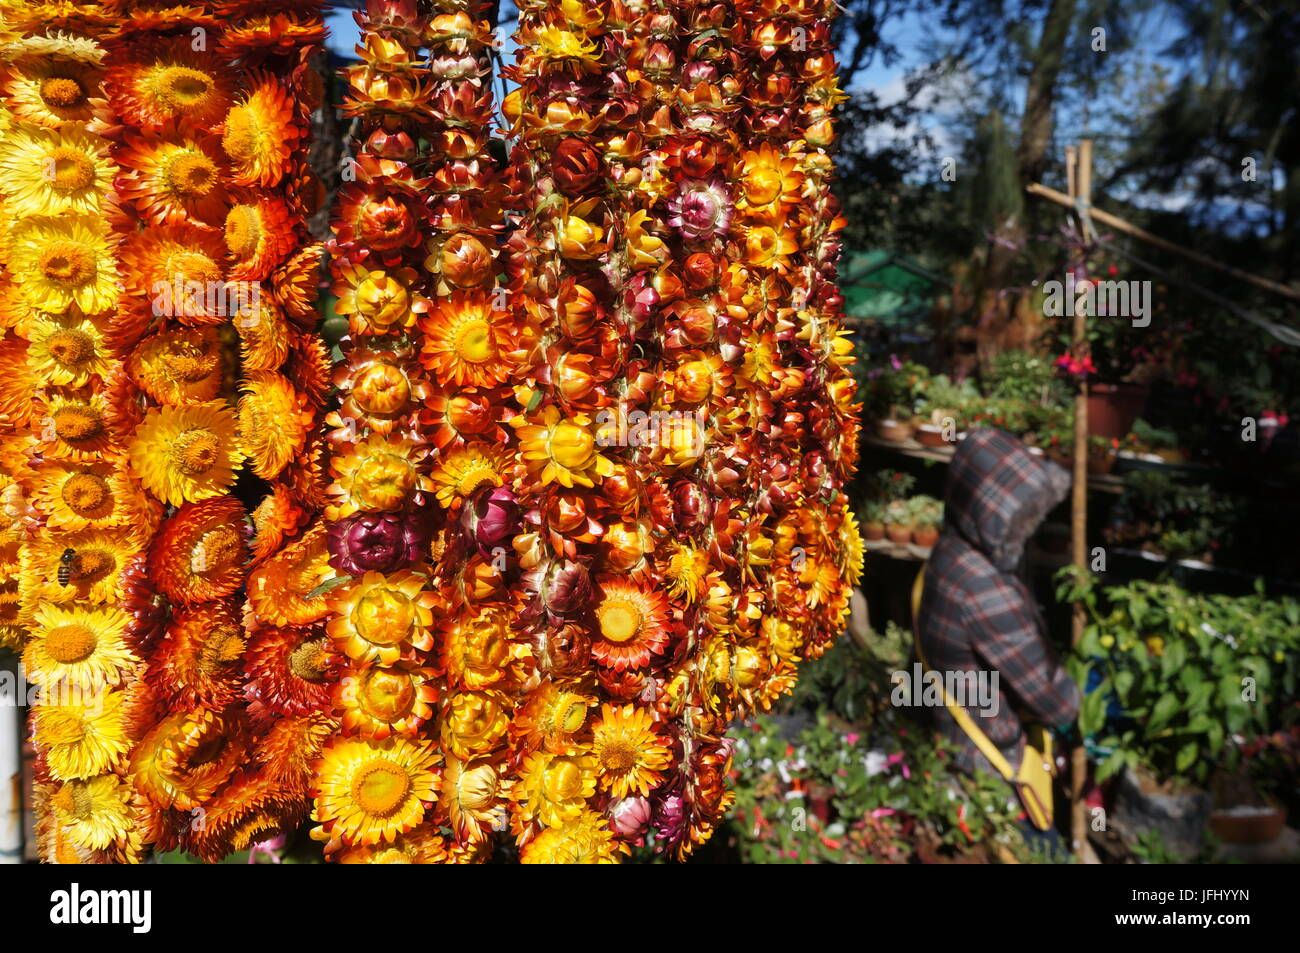 Hanging Everlasting Helichrysum sunflower flowers background, with  bee / wasp.. Retailer hides herself from sun - Stock Image